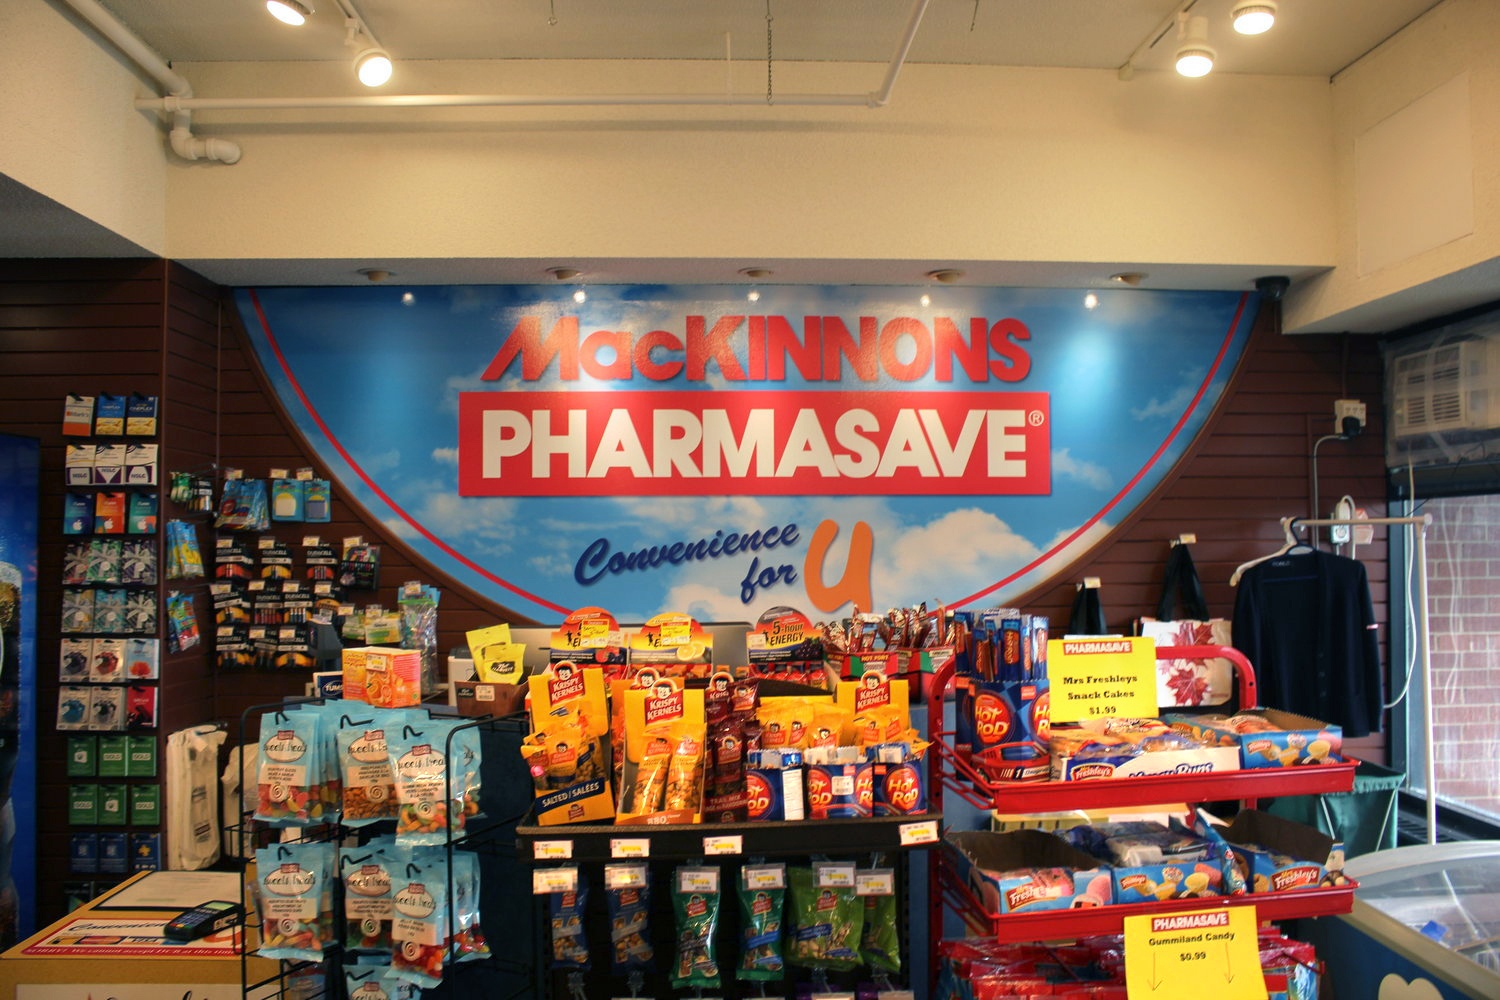 MacKinnons Pharmasave Convenience for U - From study snacks to shampoo, medicine and flu shots - we've got you covered! We're open daily, 9 am - 9pm, and weekend  12 PM to 9 PM on 2nd floor Bloomfield Centre. Don't forget to transfer your perscriptions to our full service pharmacy for additional savings with your student heath card. Our pharmacy is open weekdays 11am - 4pm, with a convenient prescription drop off box for after hours. Phone: 902-863-2376